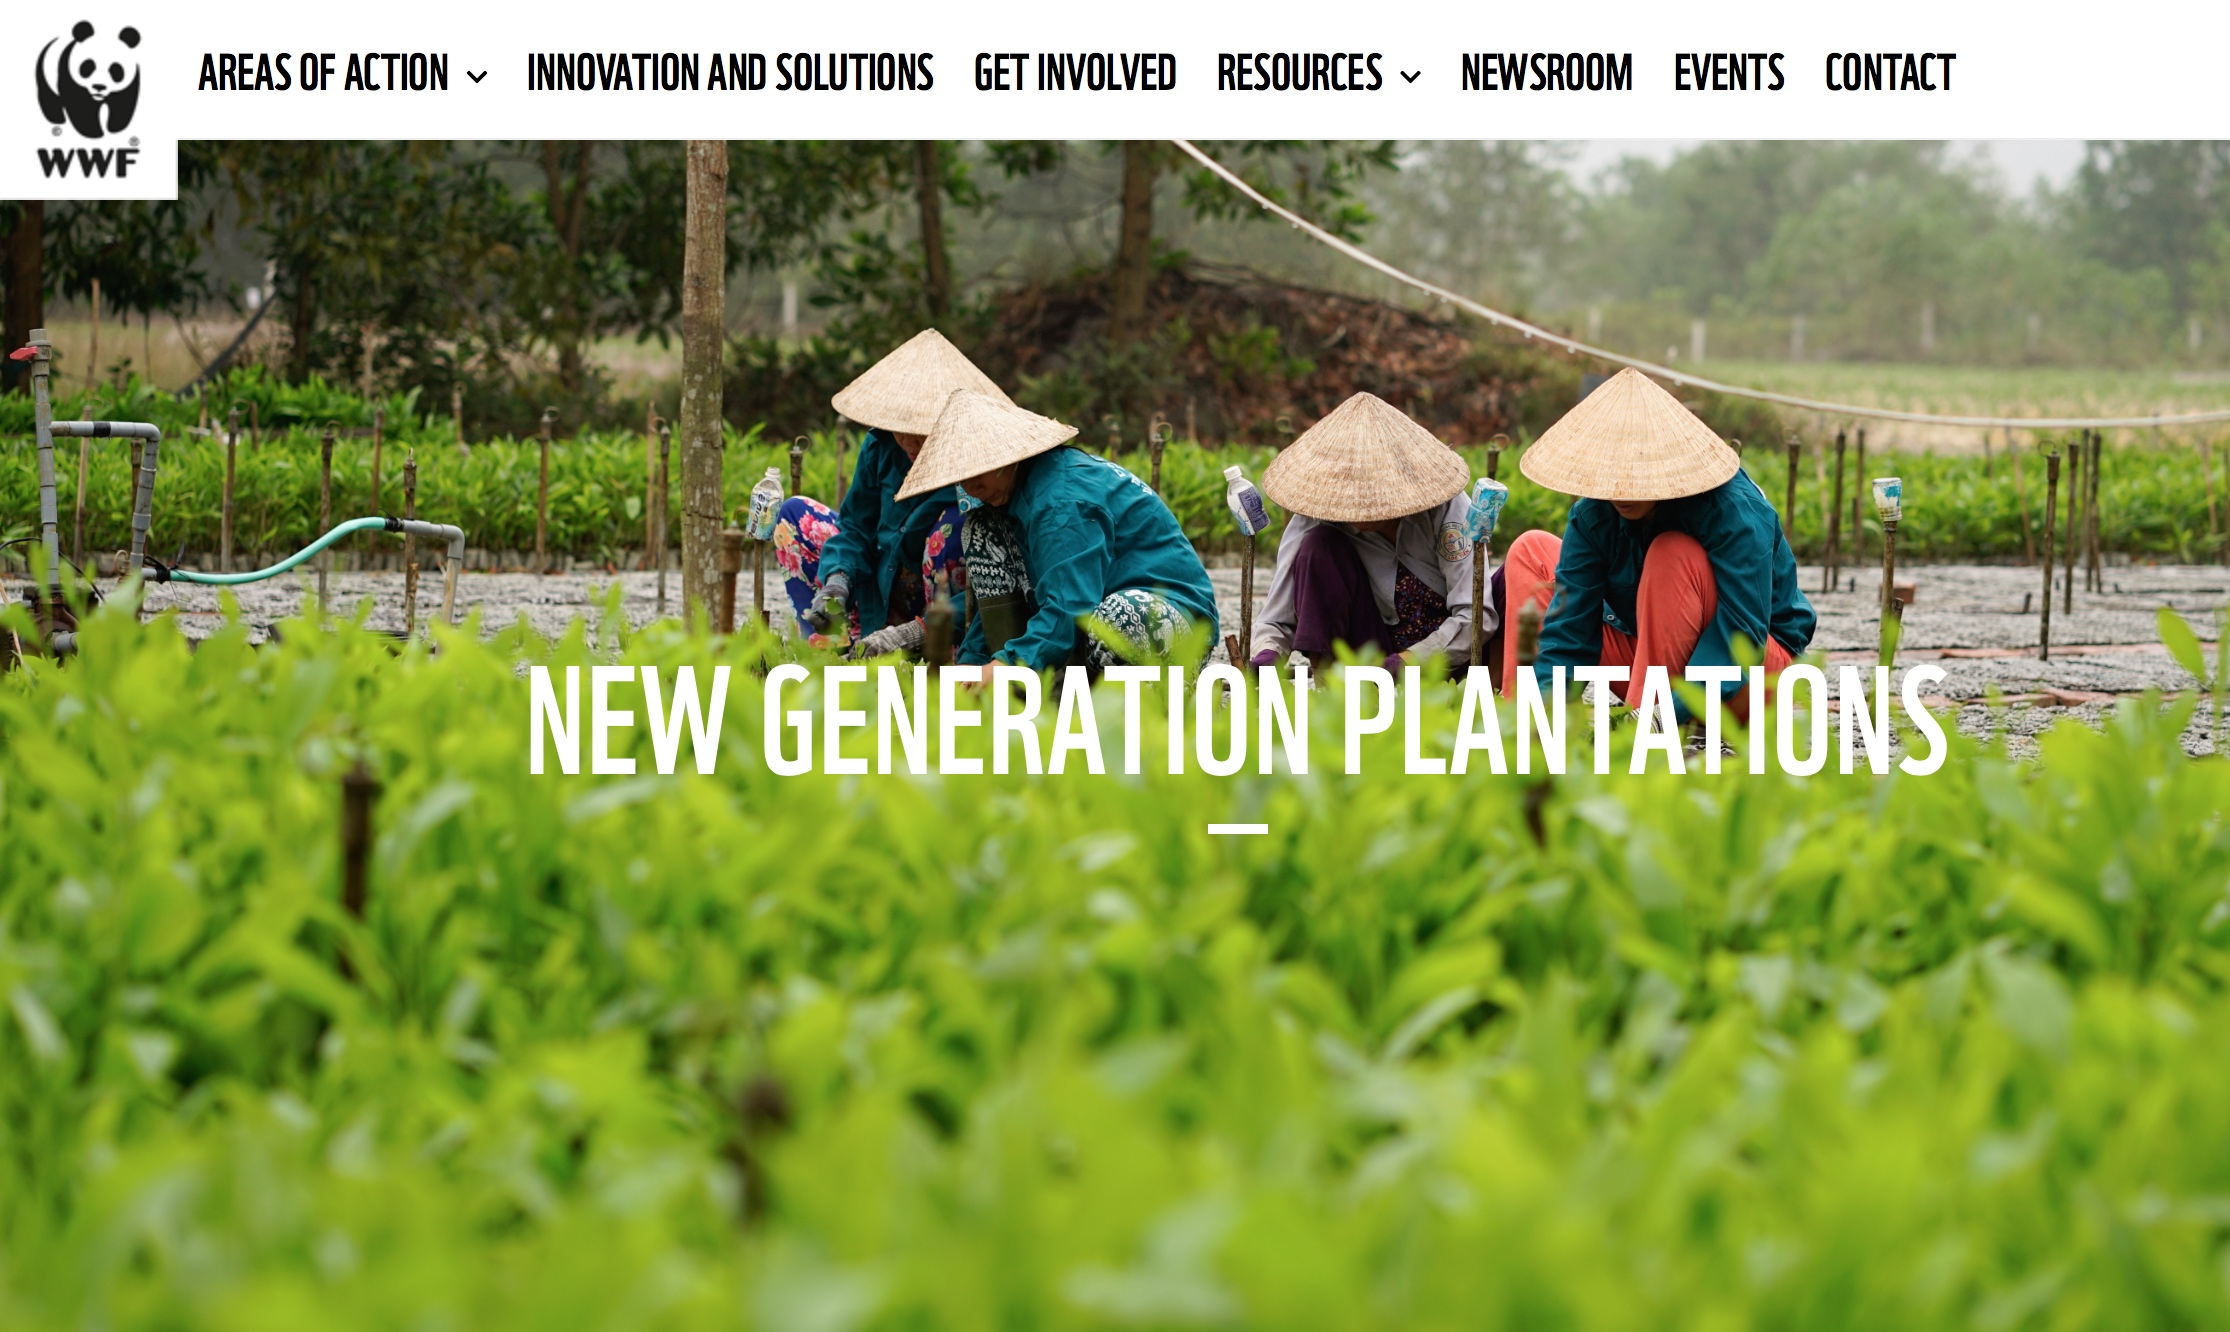 WWF Forests Forward implements the New Generation Plantations concept